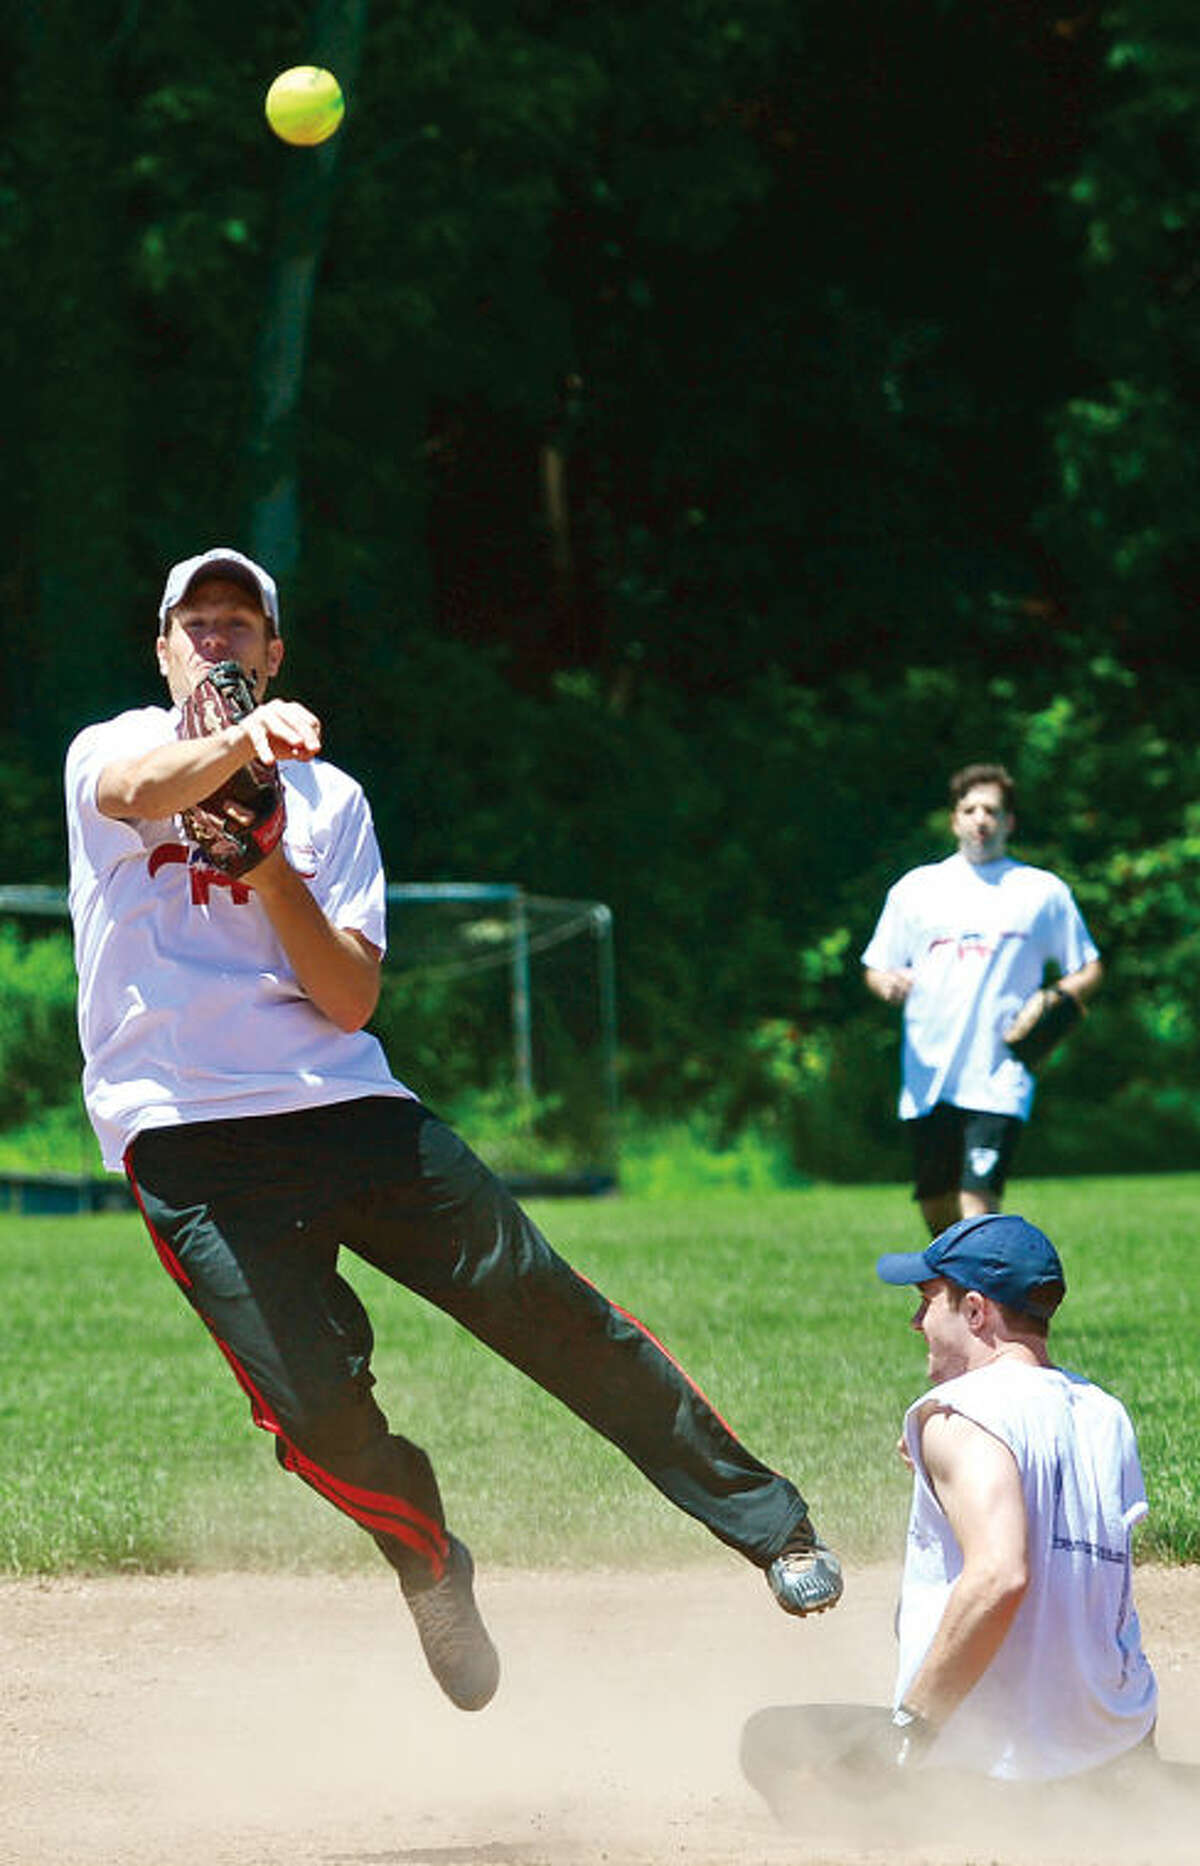 Hour photo / Erik Trautmann Republican Chris Alexander looks to turn two over the head of Democrat Max Fanwick during the annual Wilton Political softball game where town Republicans play Democrats for the Frivolity Cup as part of Wilton's Independence Day Celebration.